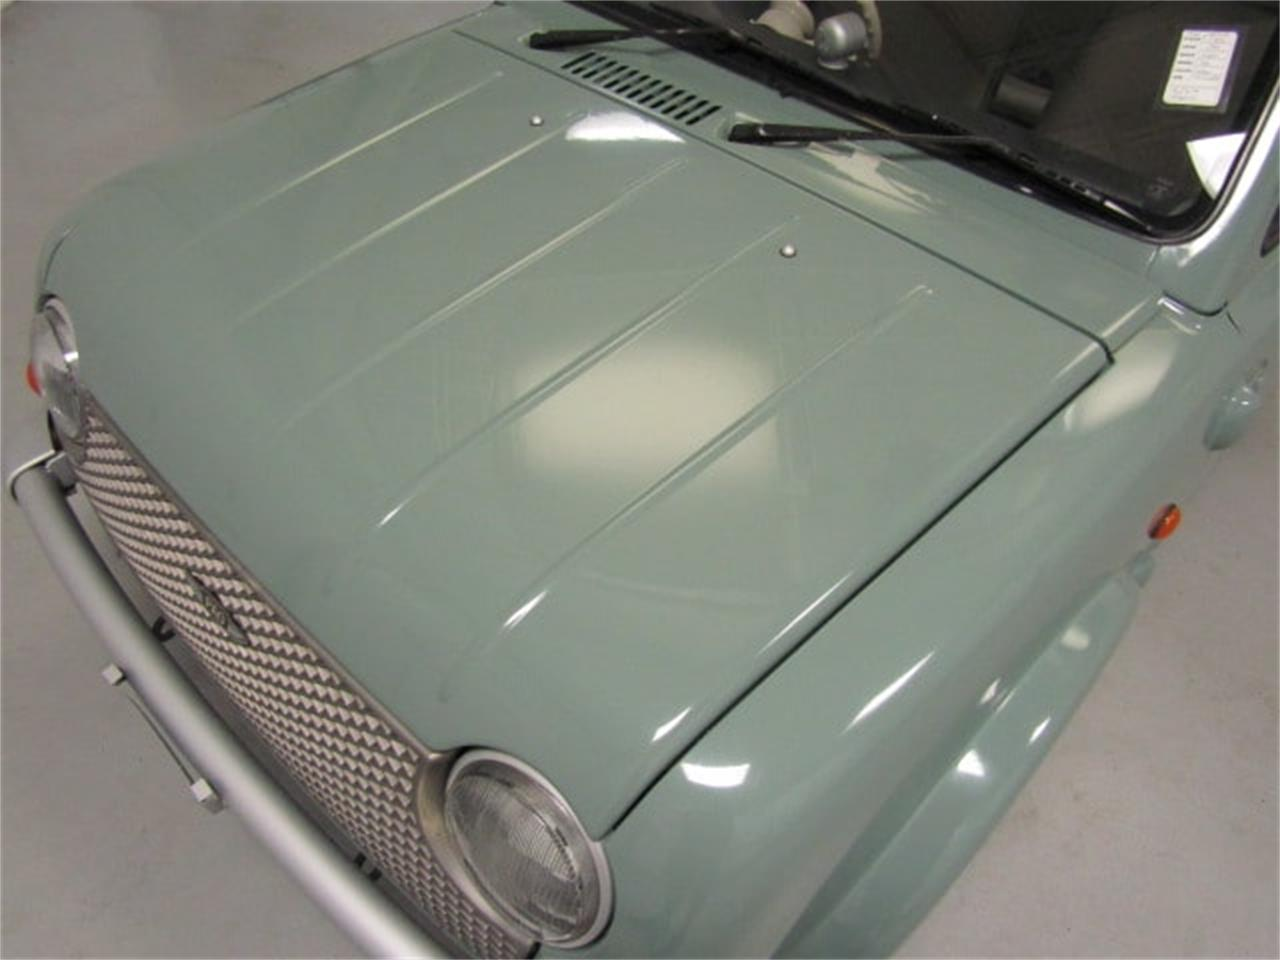 Large Picture of '90 Nissan Pao located in Virginia - $9,967.00 - LI63